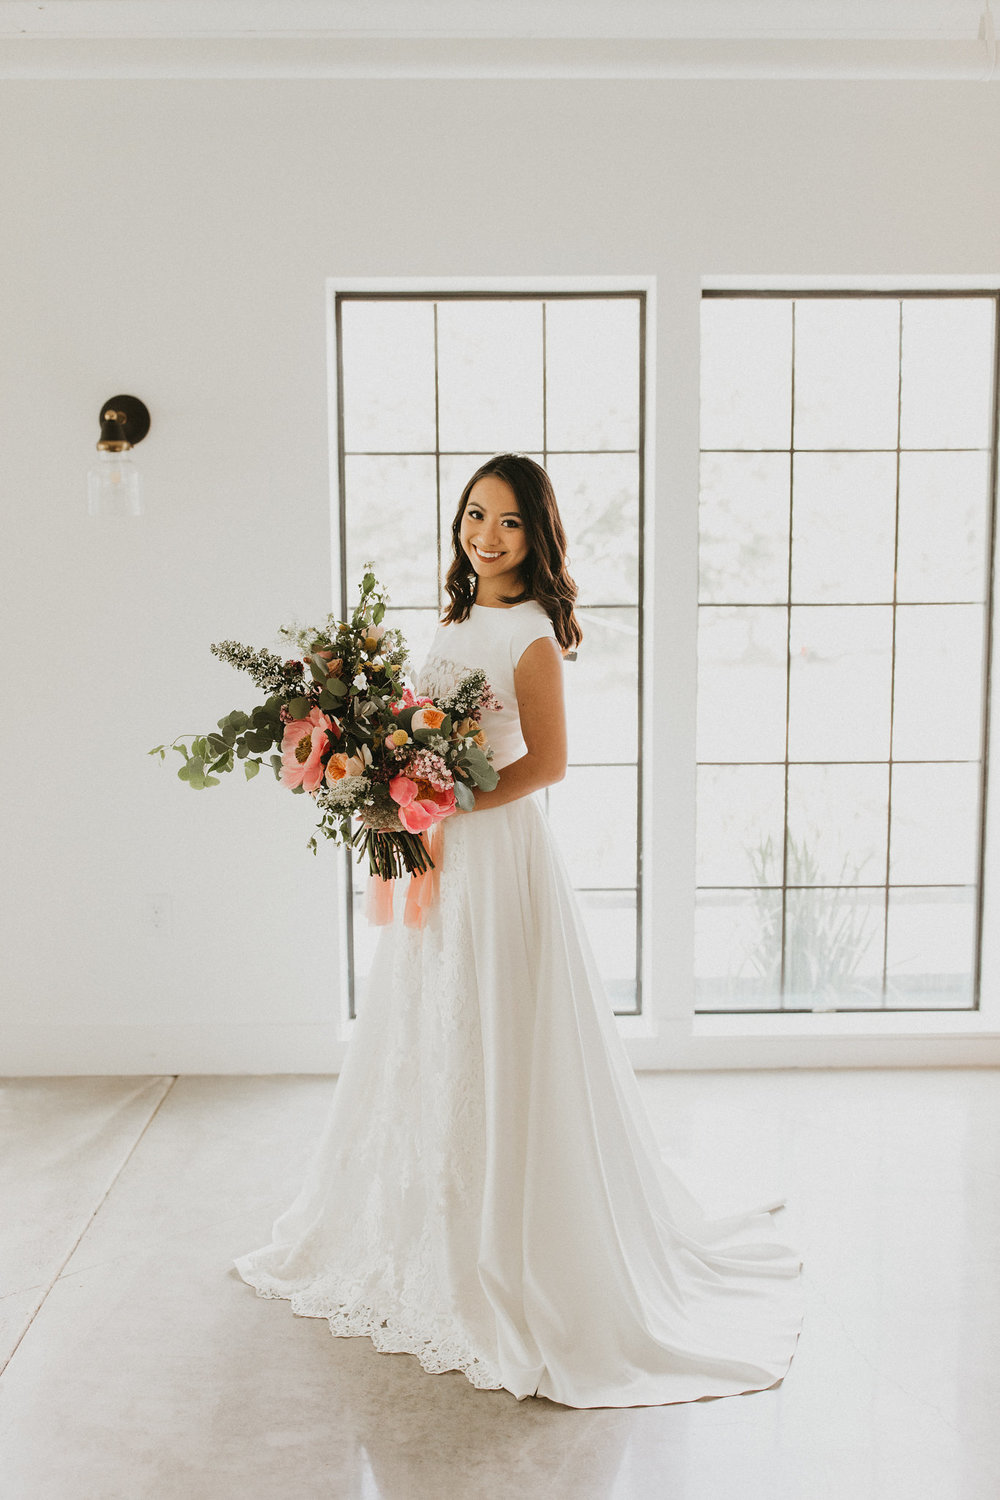 Look how that bouquet just pops against the dress? And the unique hem-line in the front of the dress where the lace cascades down the length of the front! DREAMY!